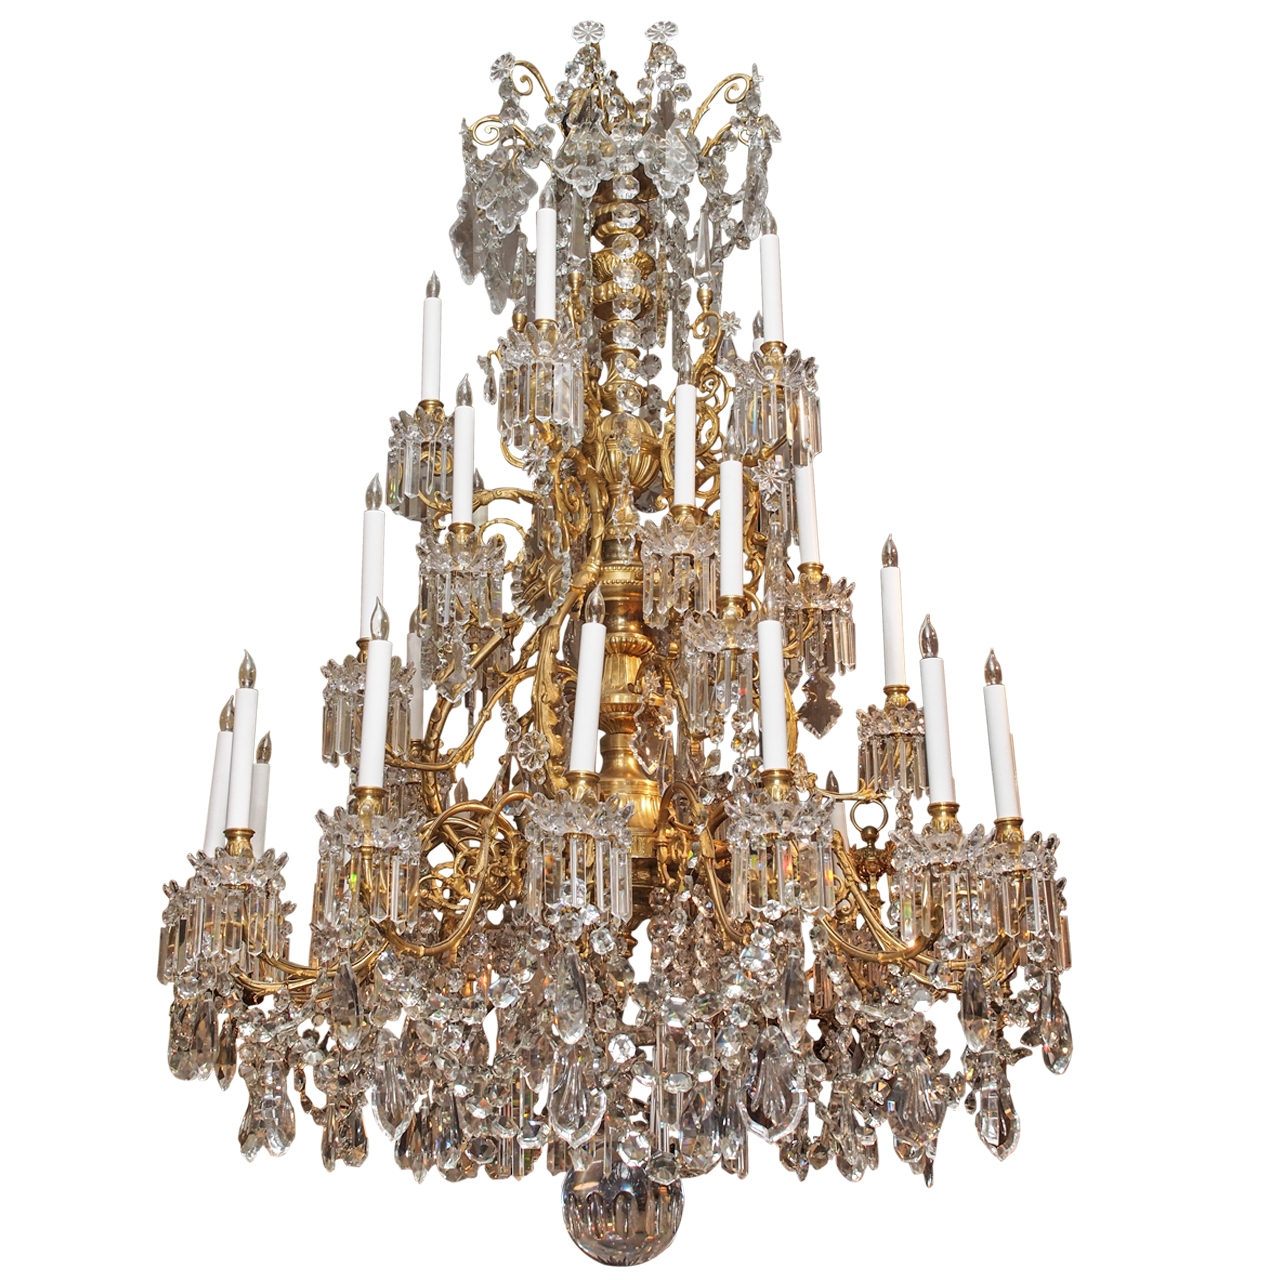 Magnificent Antique French Baccarat Crystal Chandelier Circa 1850 Inside Antique Chandeliers (Image 15 of 15)